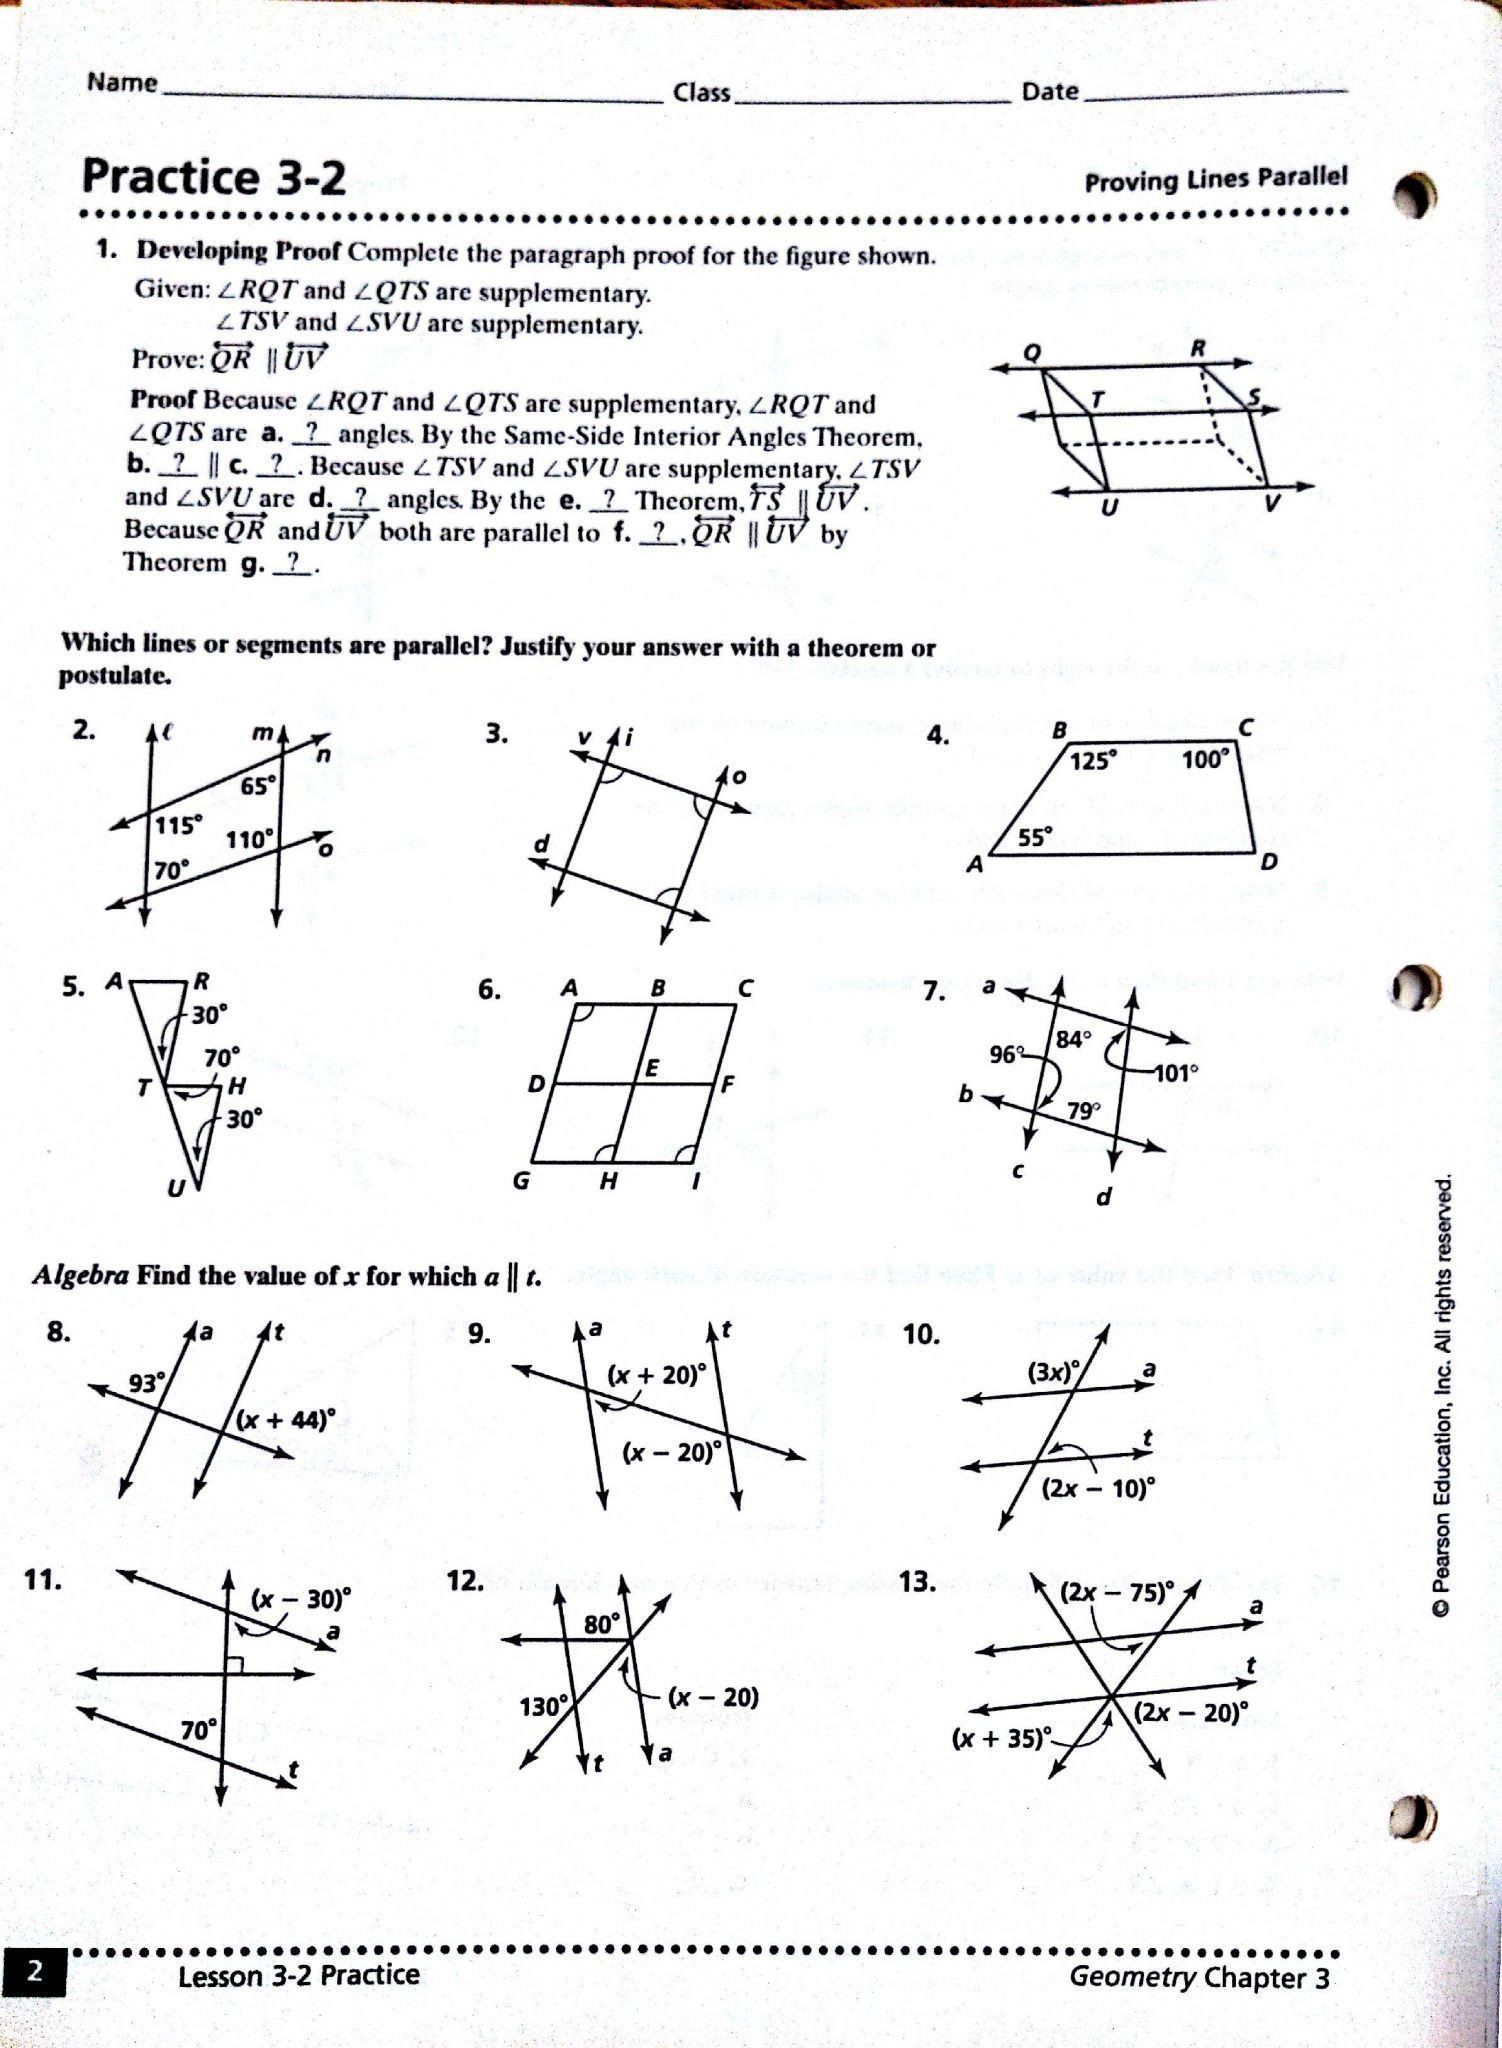 20 Congruent Triangles Worksheet Answers In